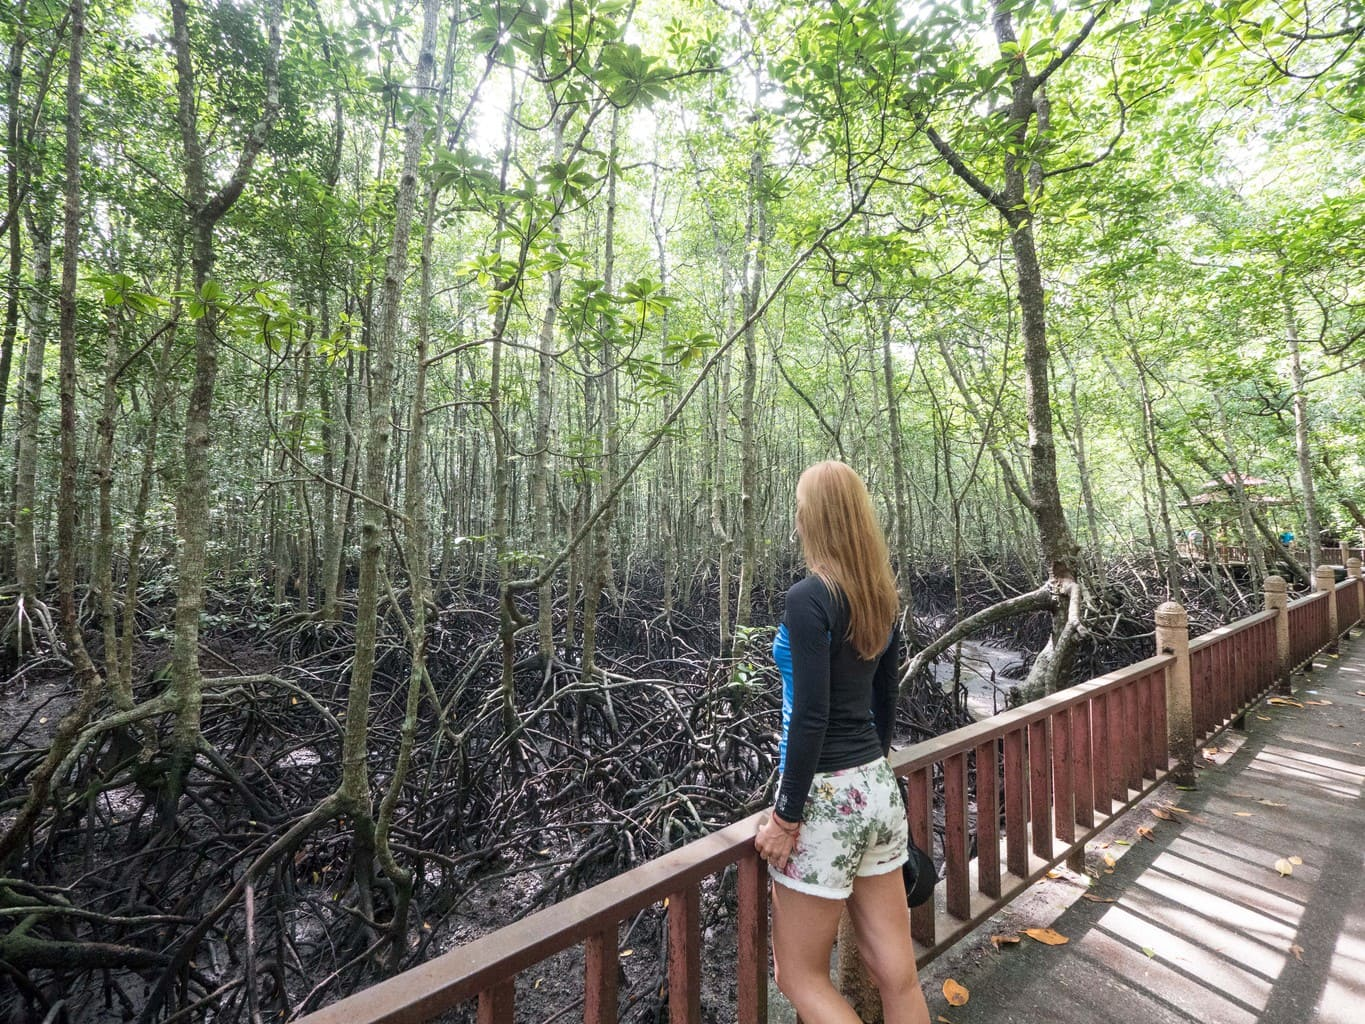 Looking at the mangroves